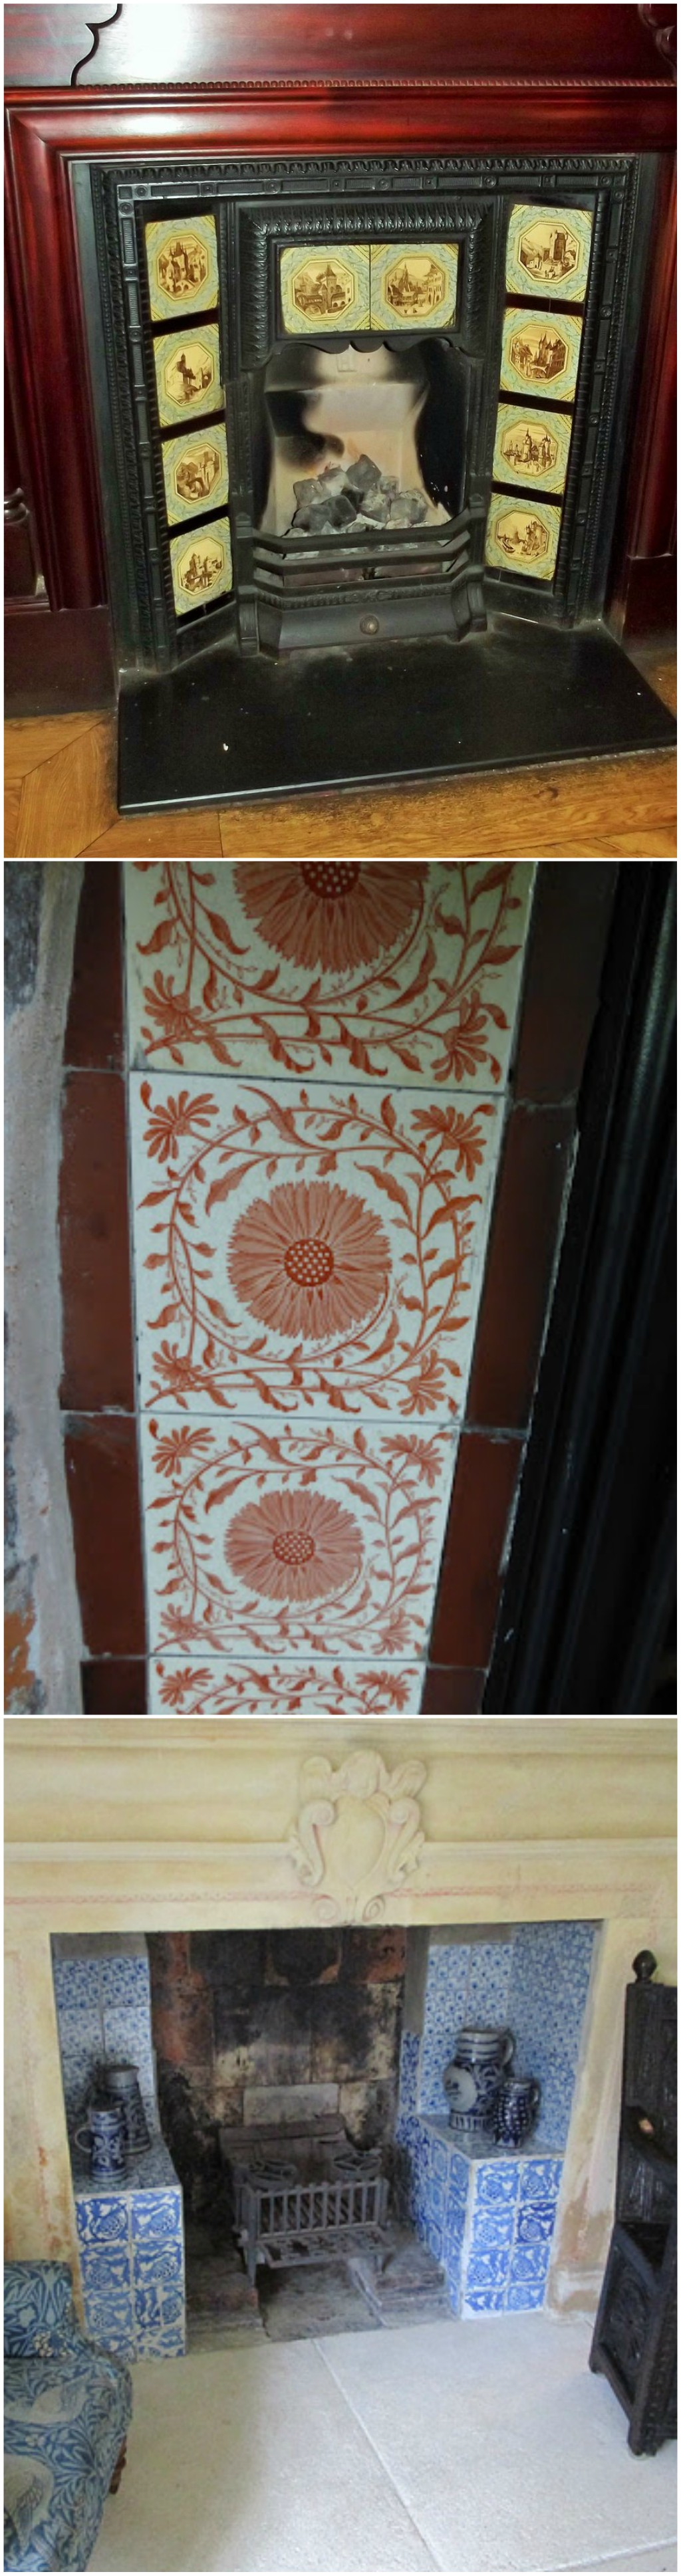 decorative arts victorian tile characteristics